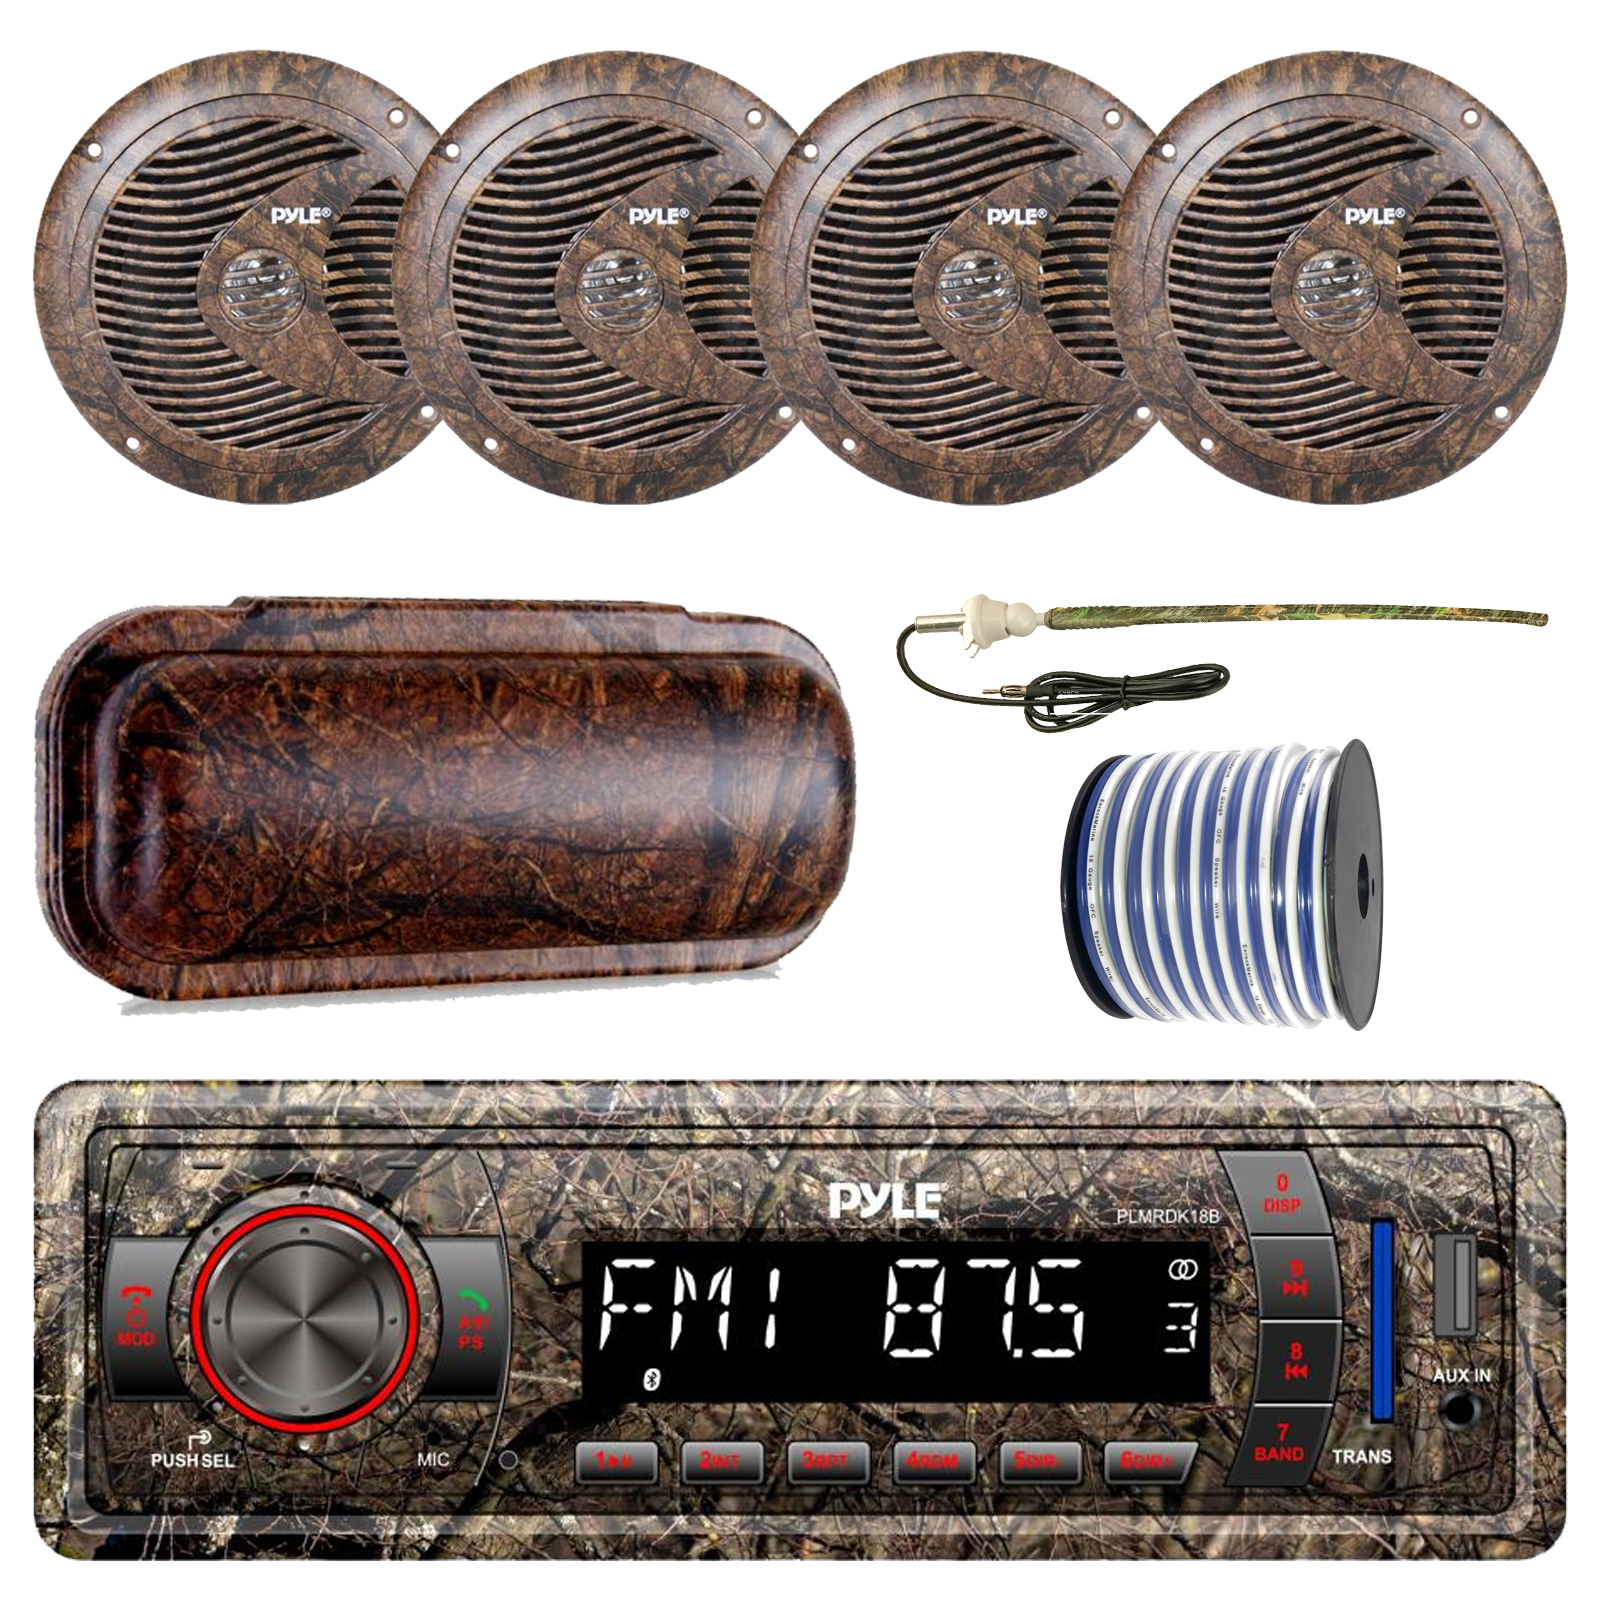 Pyle Marine Single-DIN Bluetooth MP3 USB AUX Camo AM/FM Radio, 4x Pyle 6.5'' Waterproof Camo Speakers, Stereo Shield Cover, Enrock Camouflage Boat Antenna, 18-G 50 Ft Wire